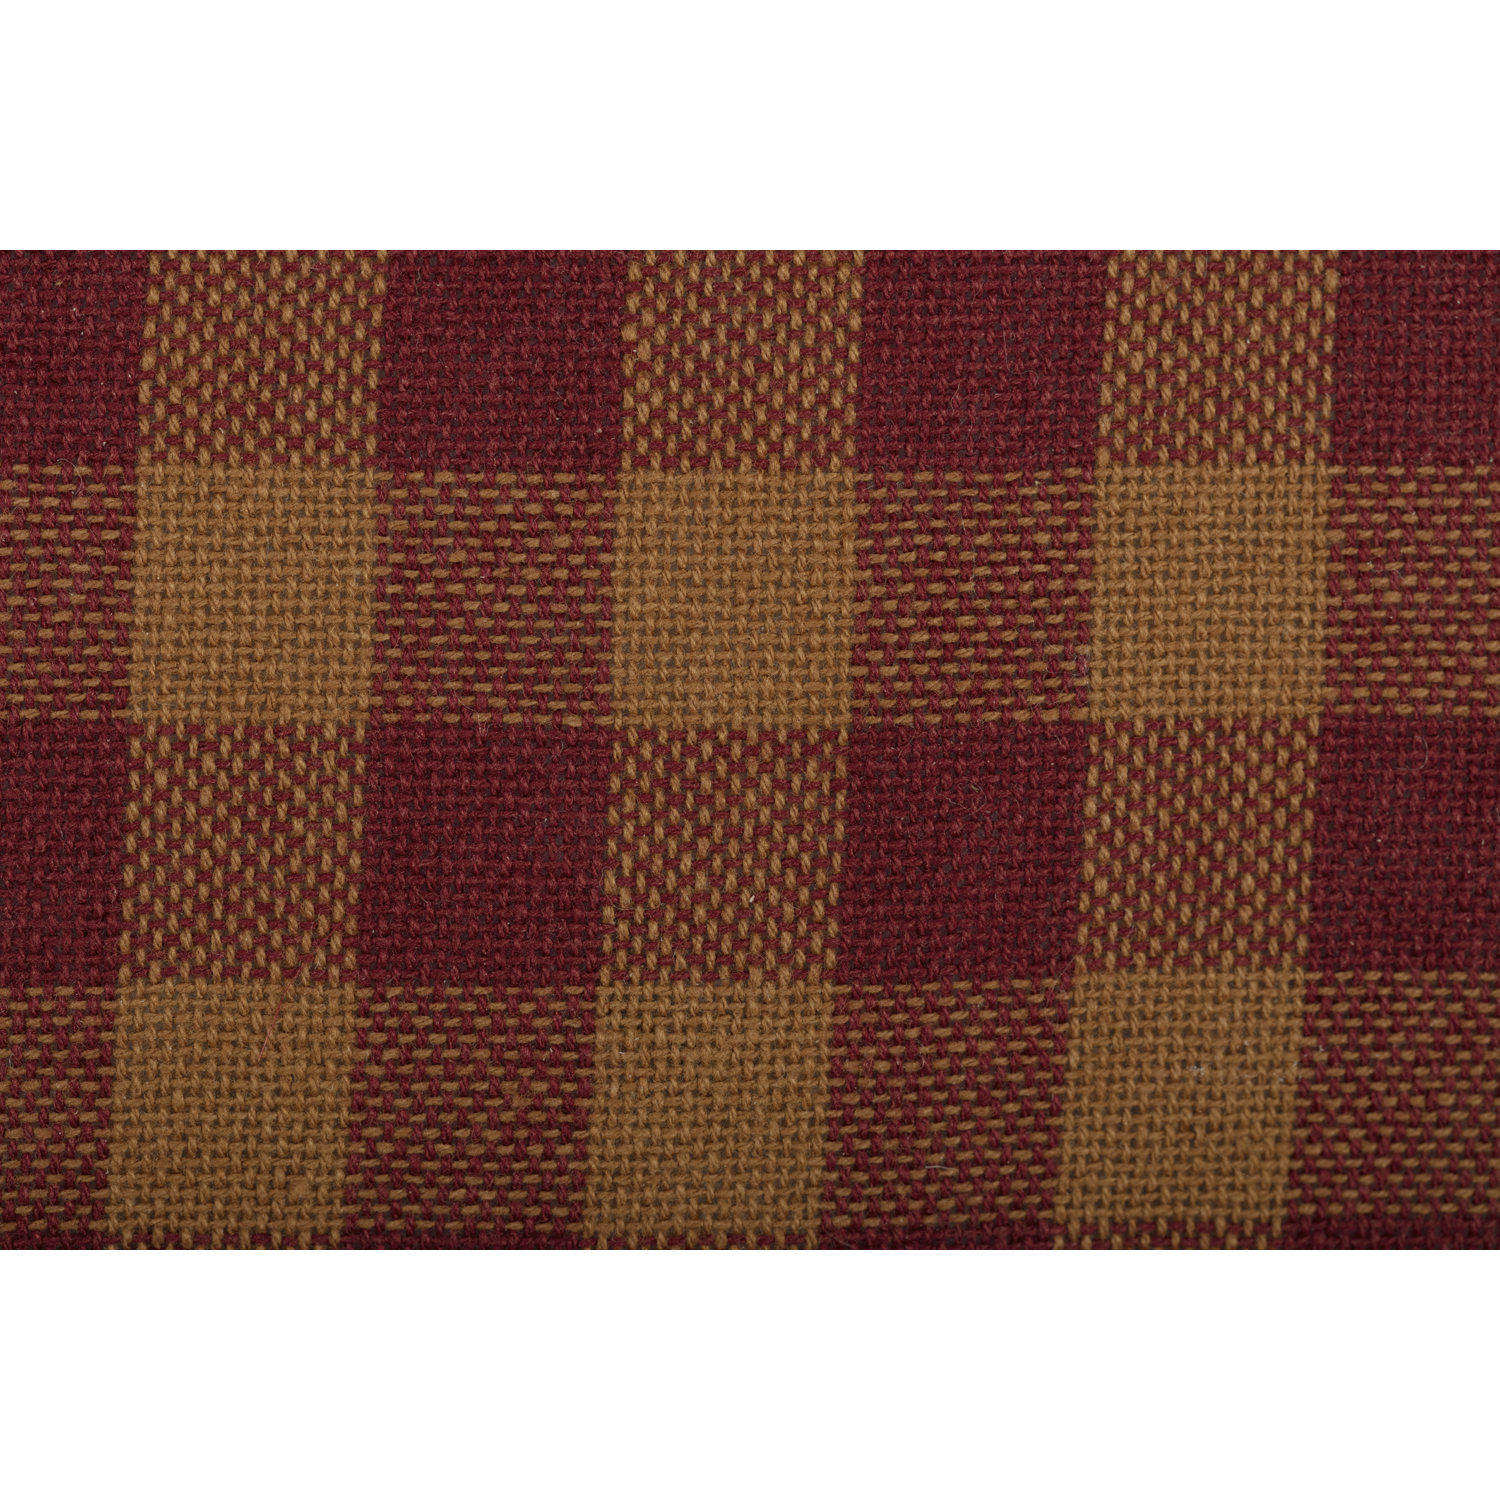 Burgundy-Check-Chair-Pad-image-6